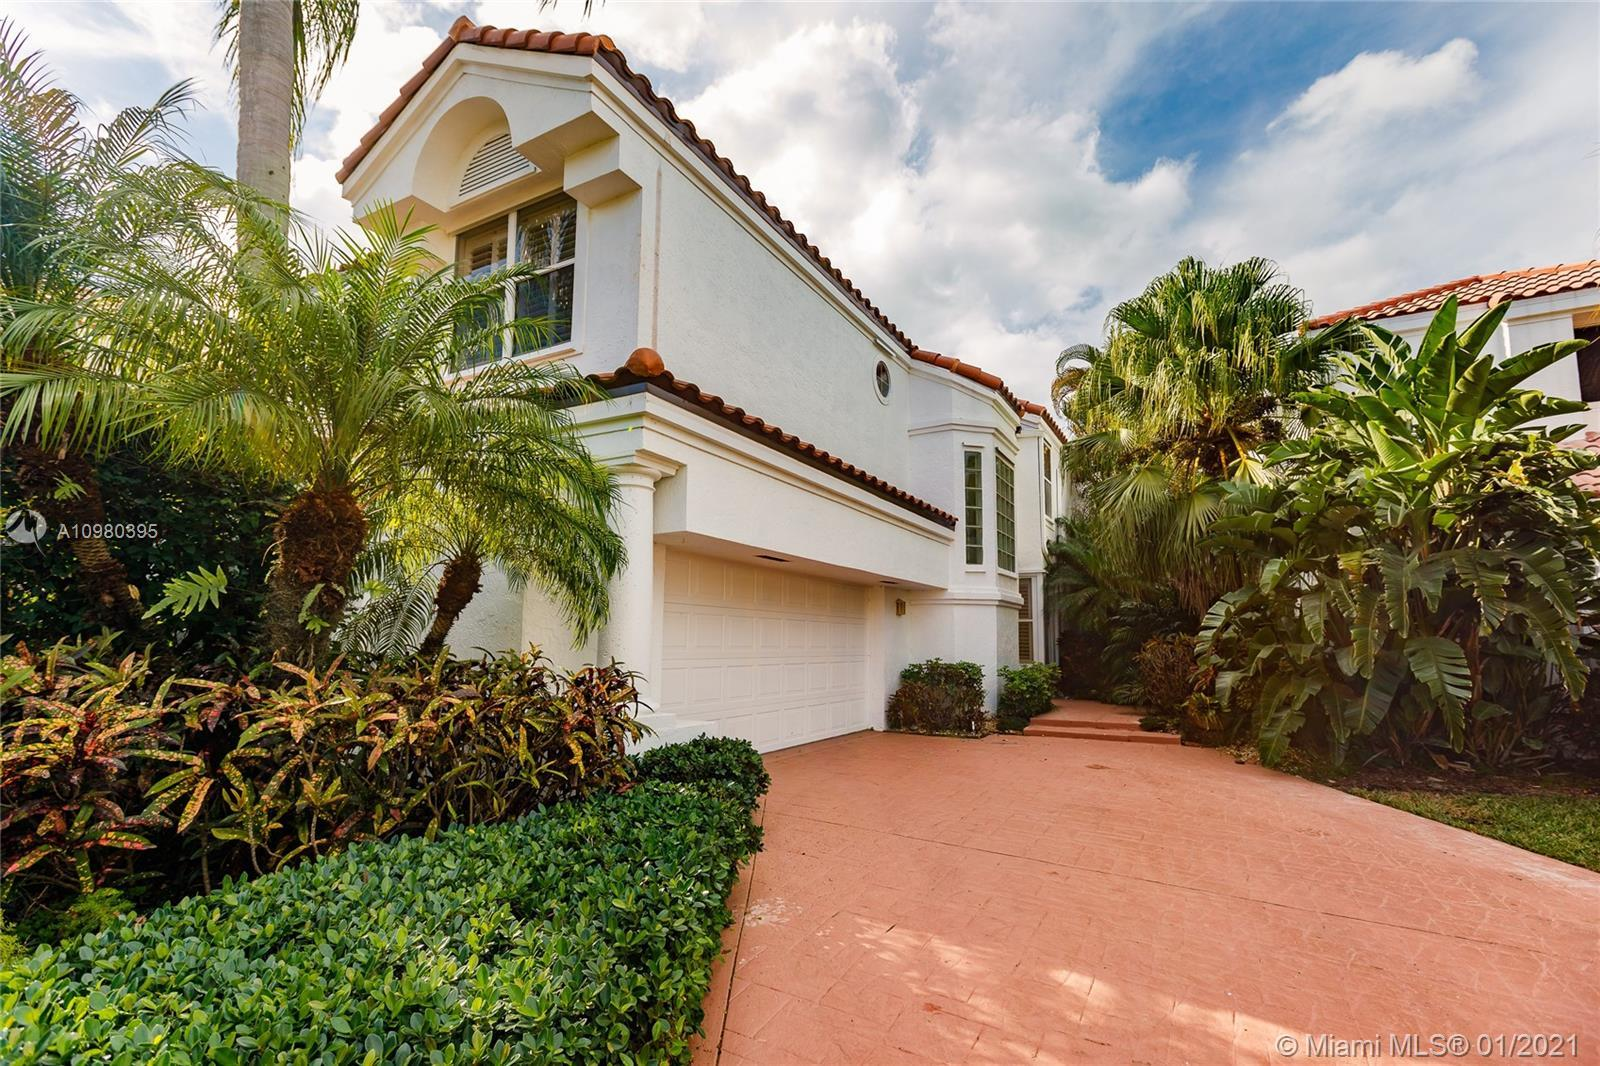 Tastefully renovated 4 Bedroom home + office, overlooking the picturesque 18th hole of the Boca Rato